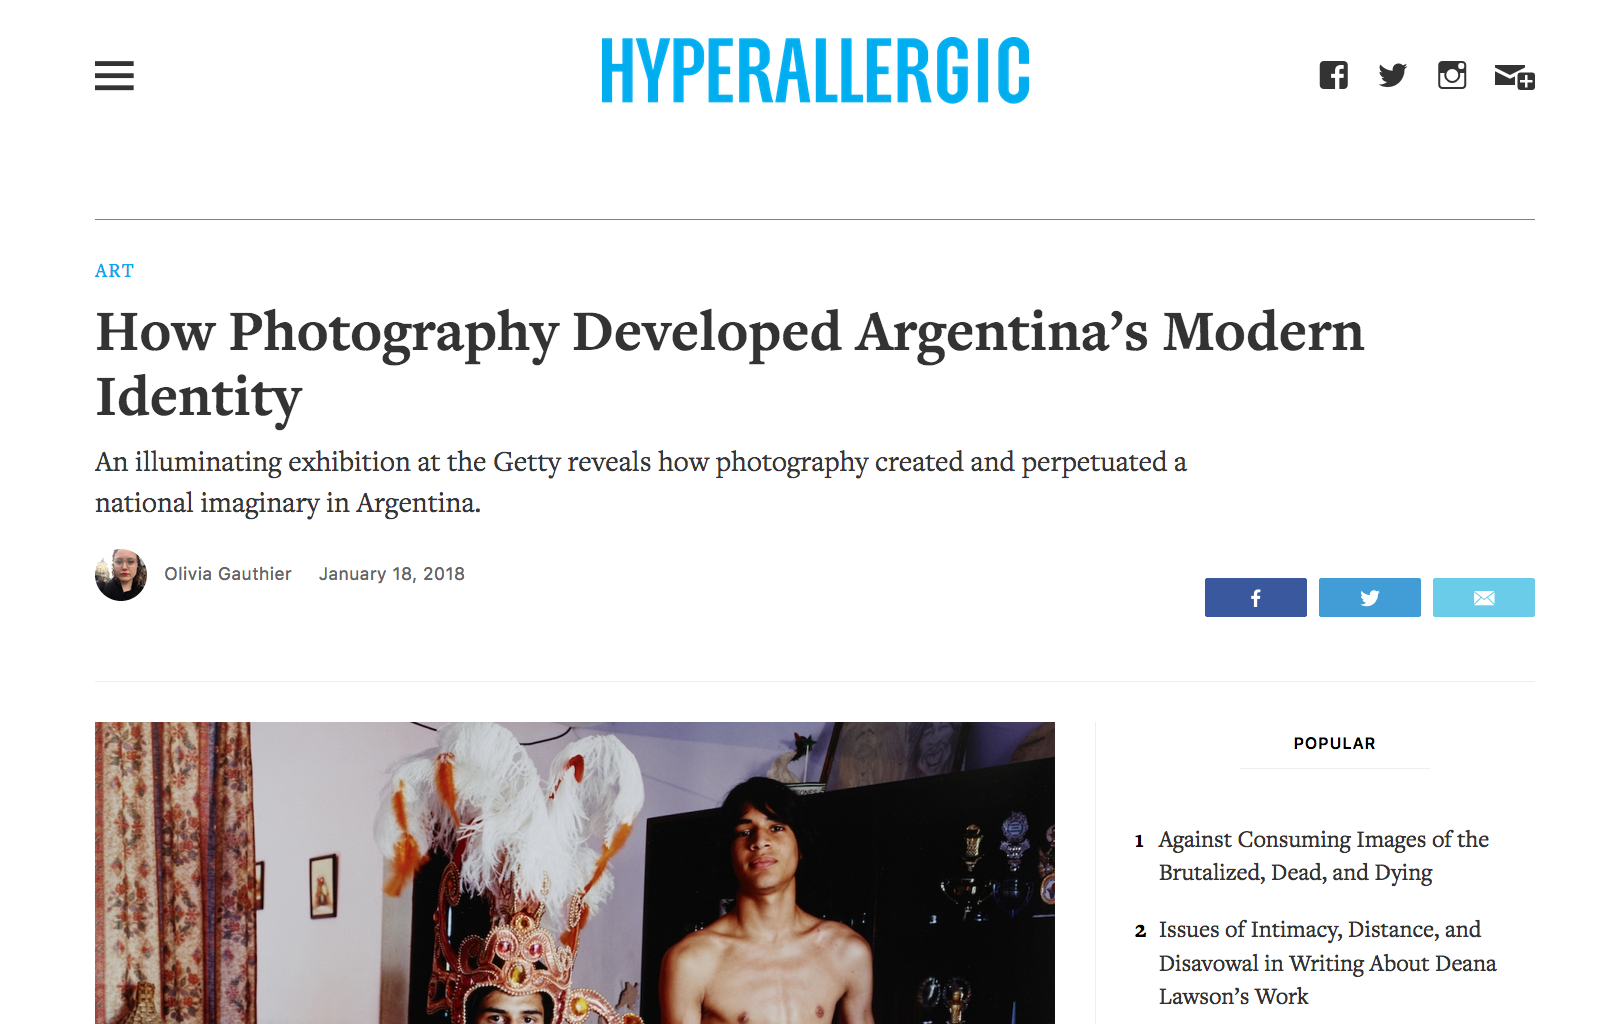 How Photography Developed Argentina's Modern Identity - Hyperallergic - January 18, 2018